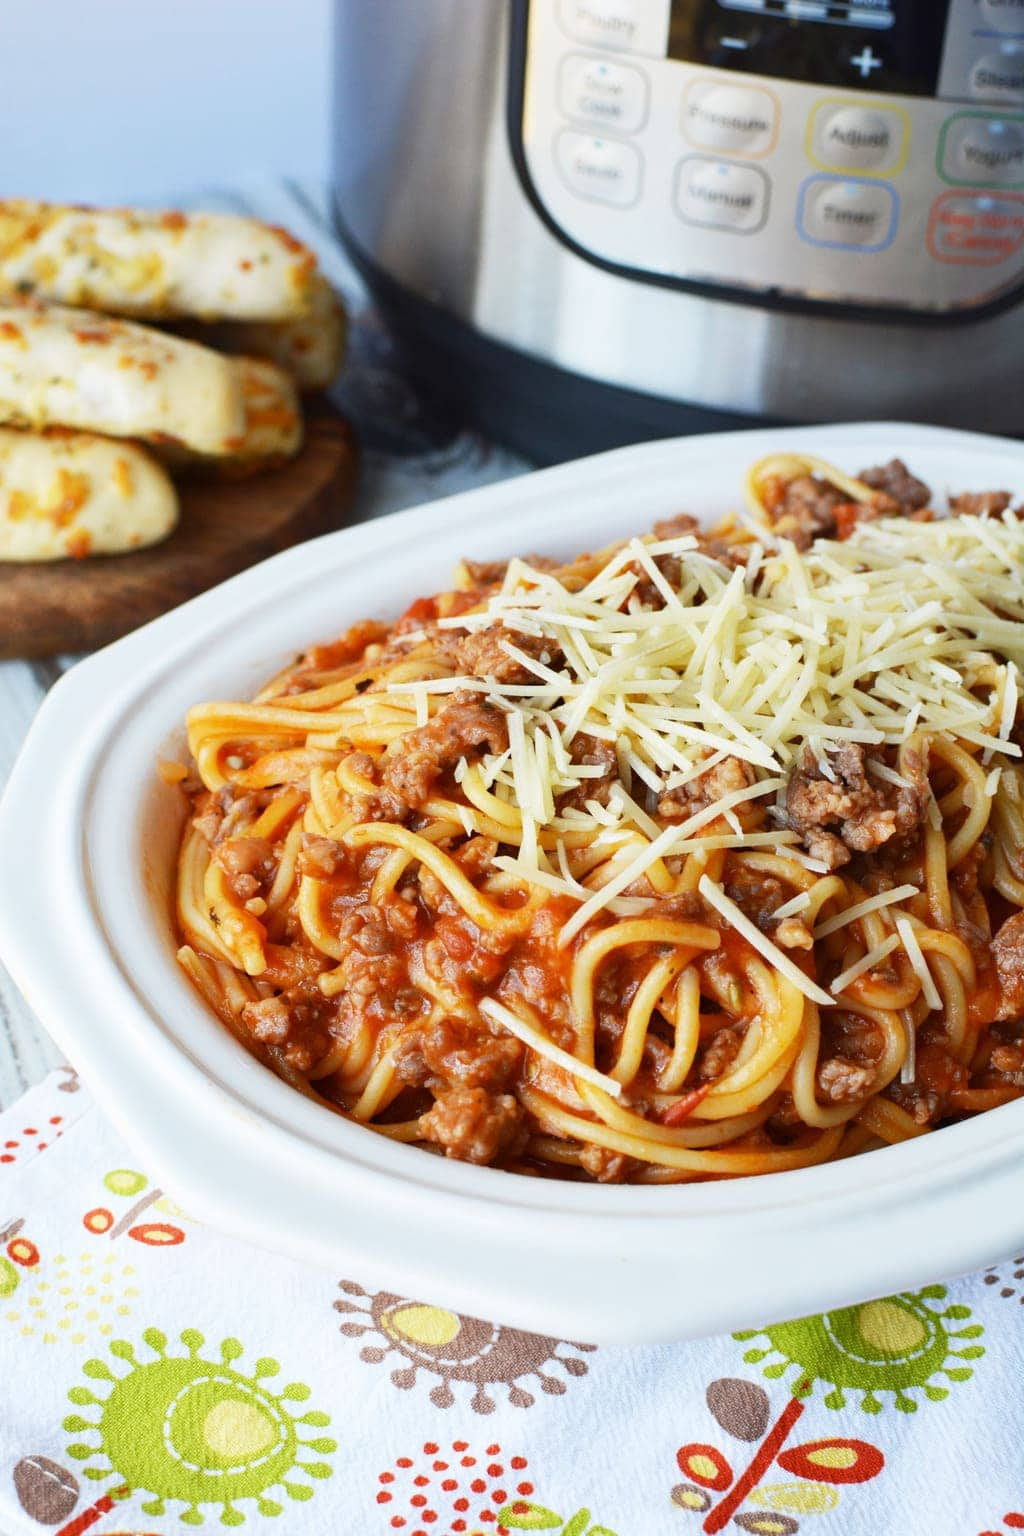 This simpleInstant Pot Spaghetti With Italian Sausagerecipe not only tastesamazing, it literally takes 10 minutes for everything from start to finish.